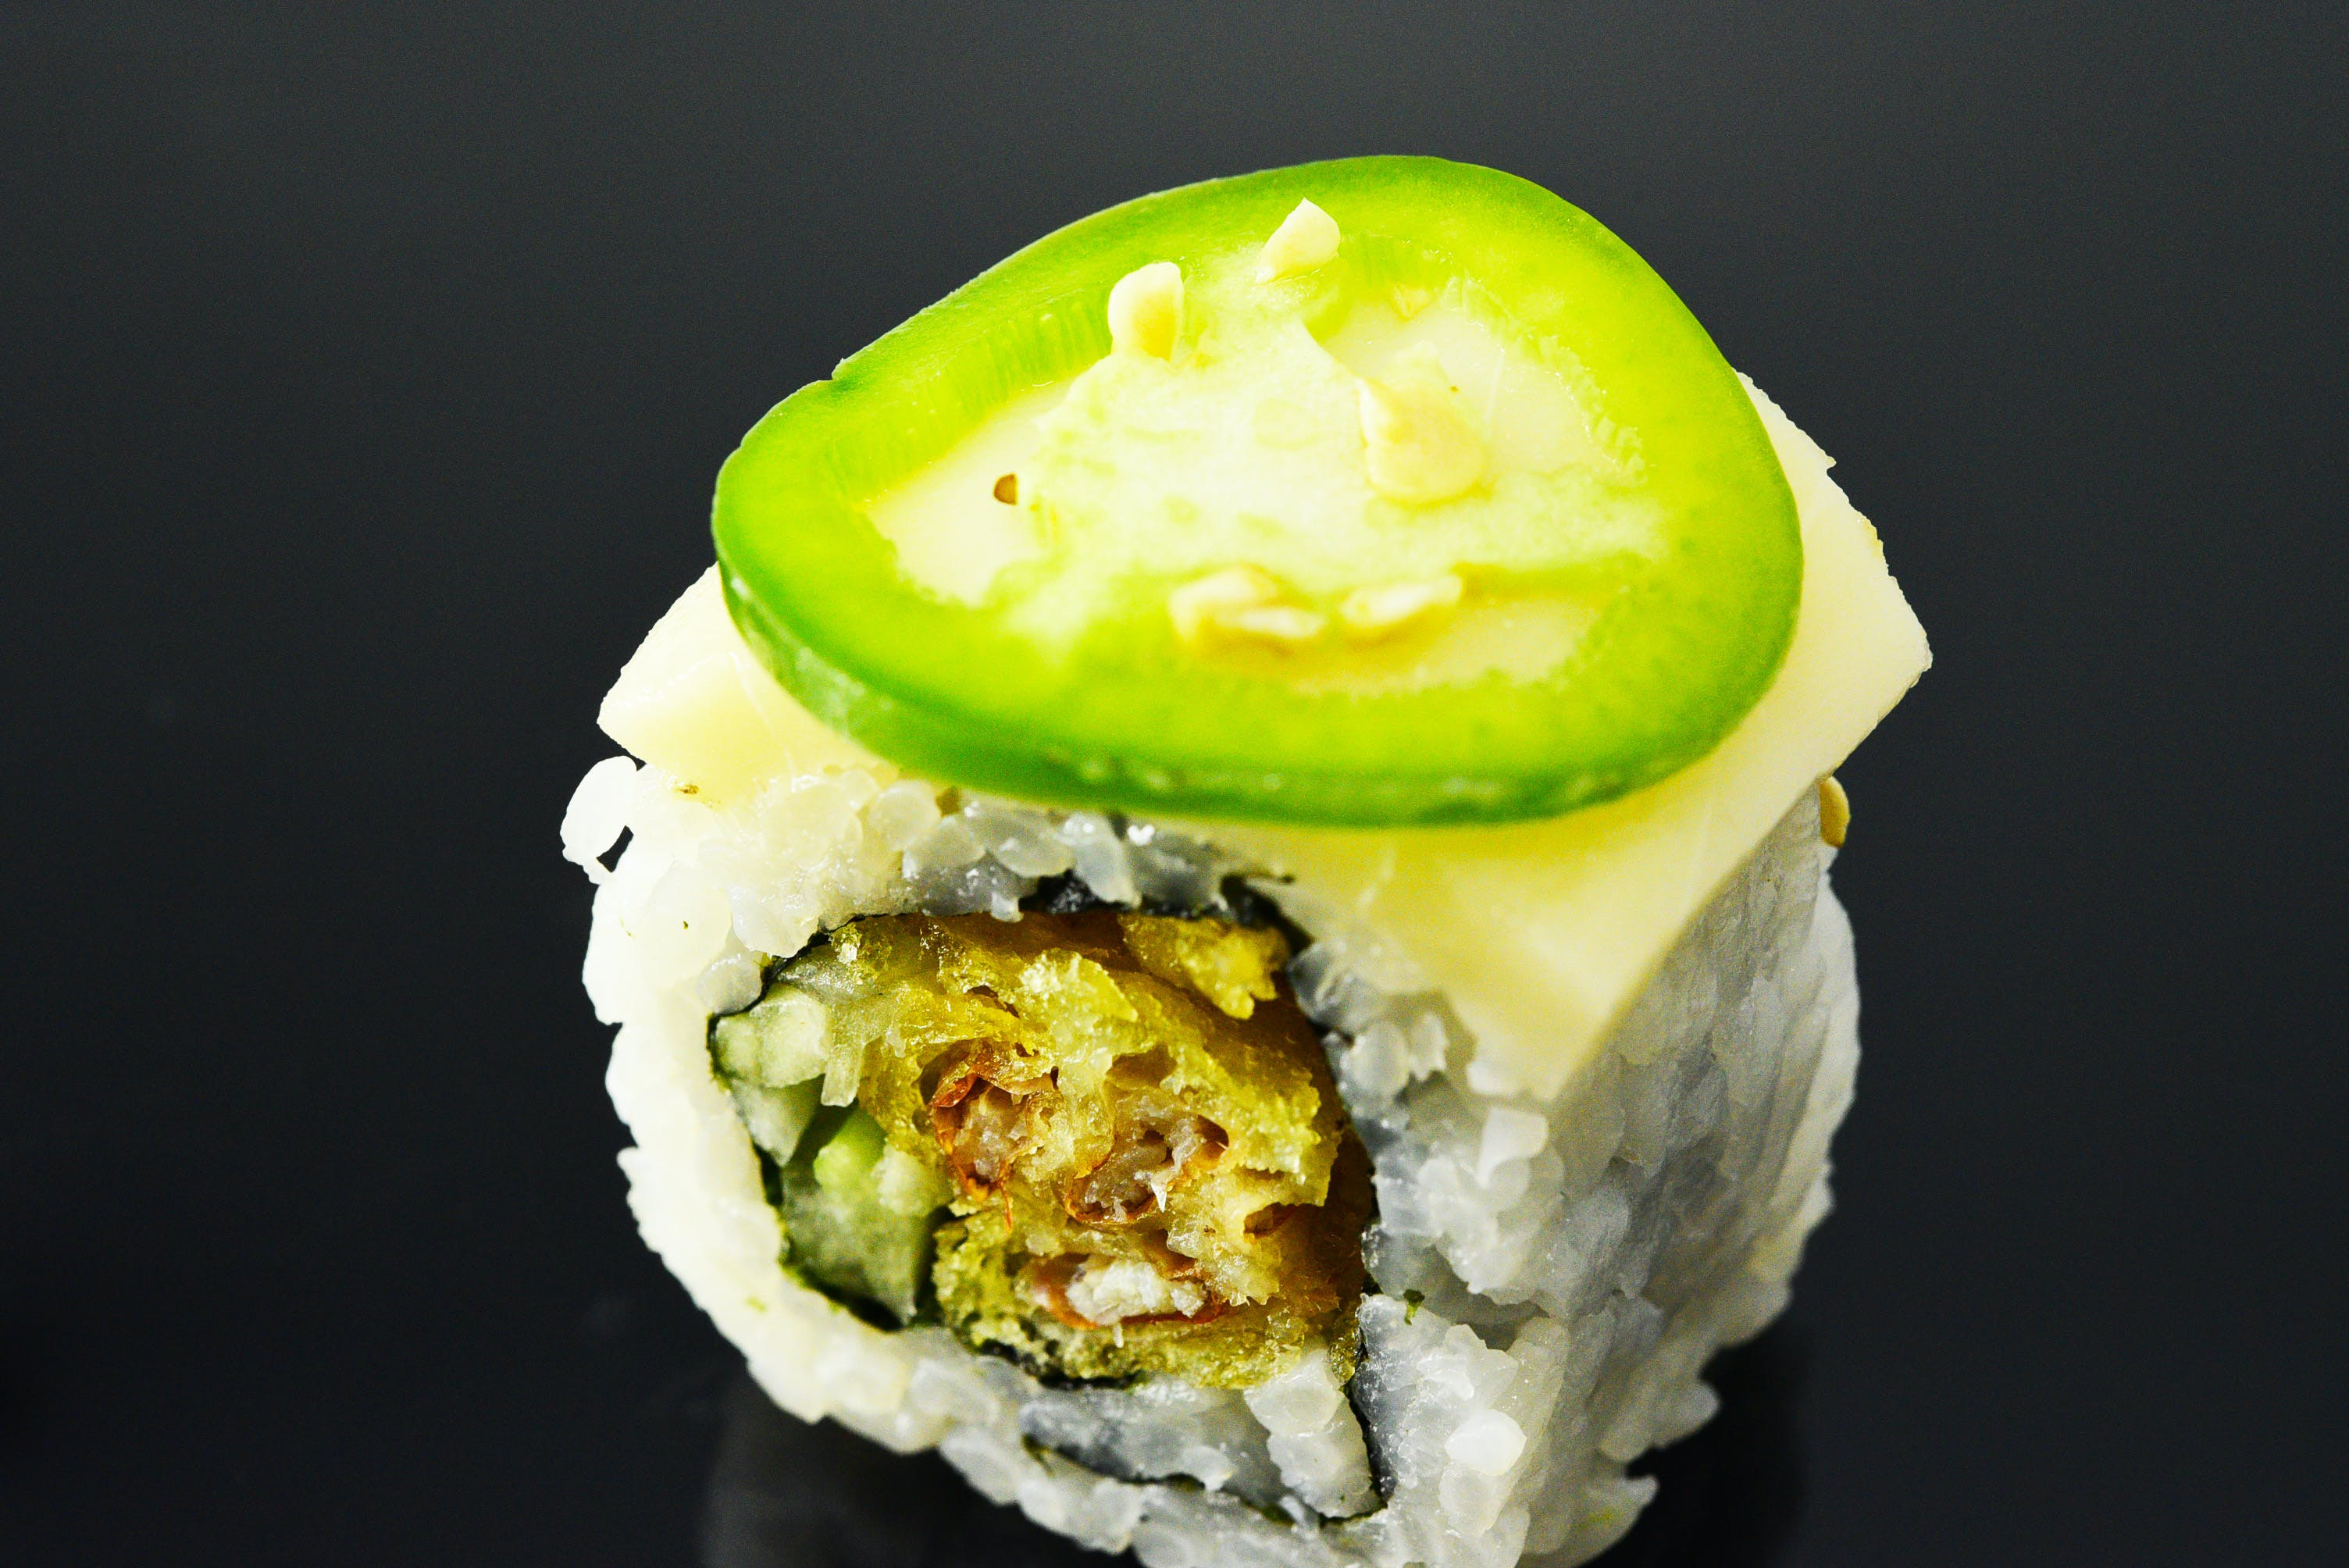 Snow Stone Roll from Fin Sushi in Madison, WI